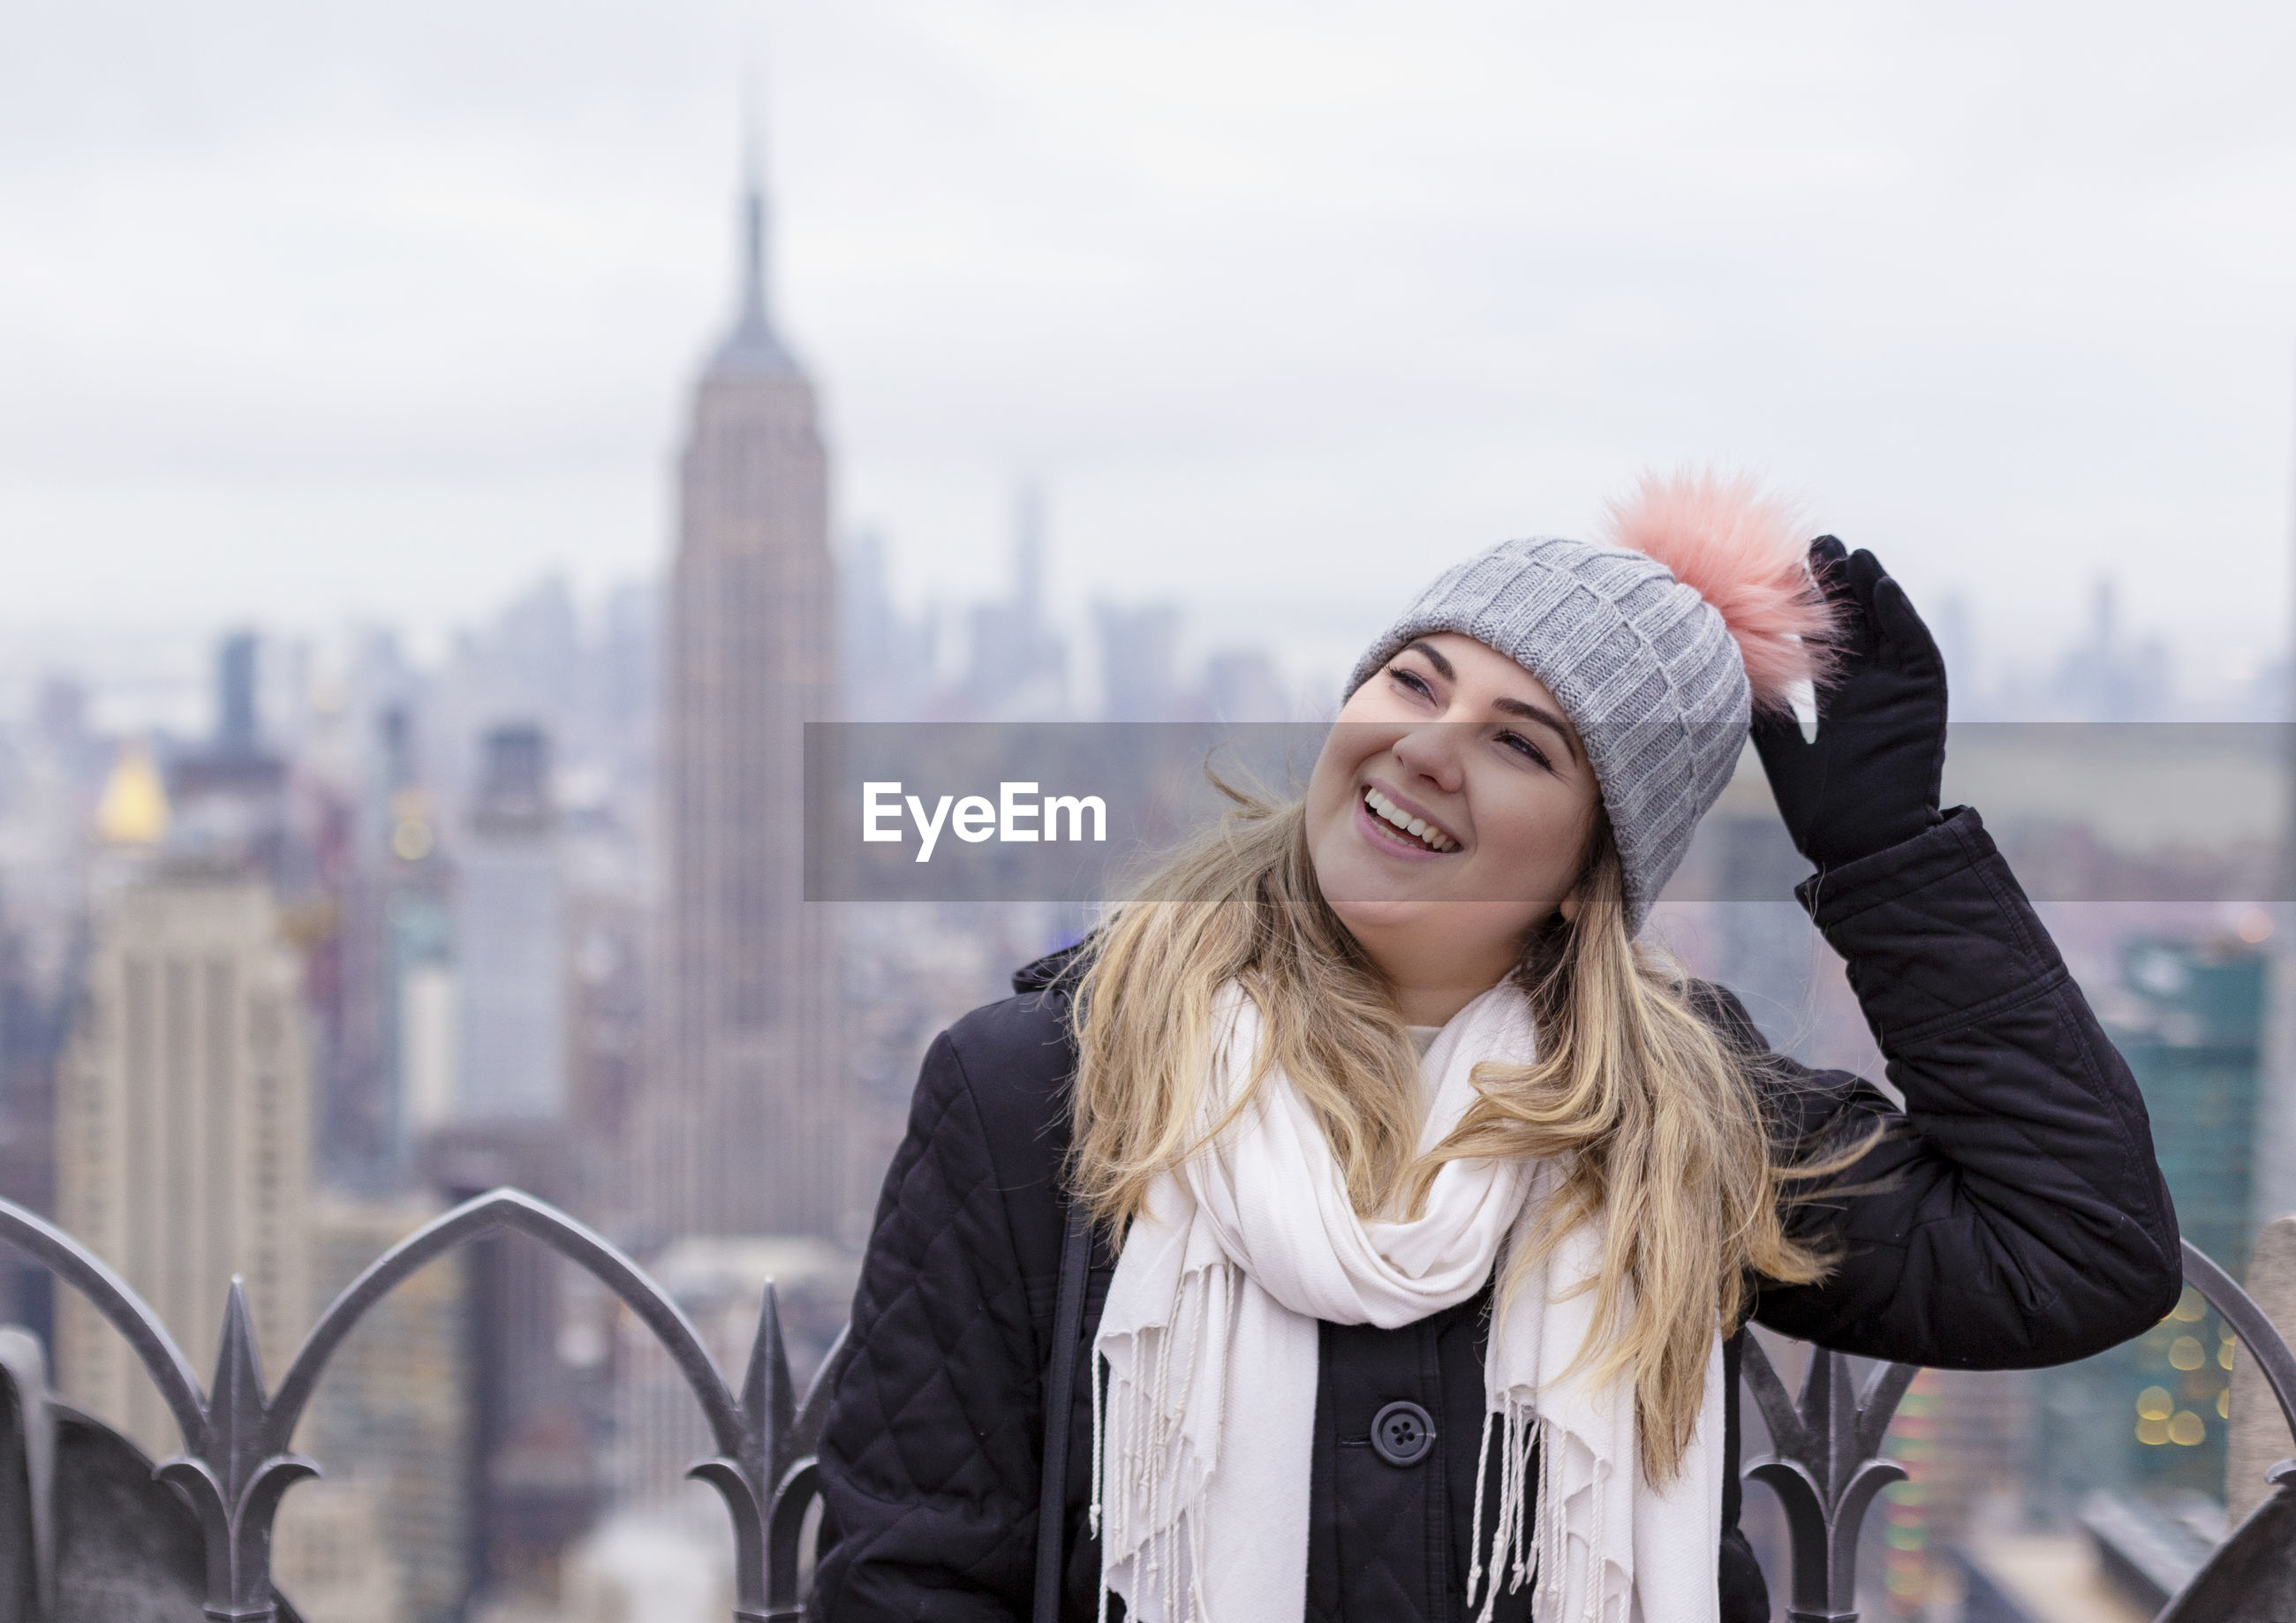 Portrait of smiling young woman against empire state building in city during winter